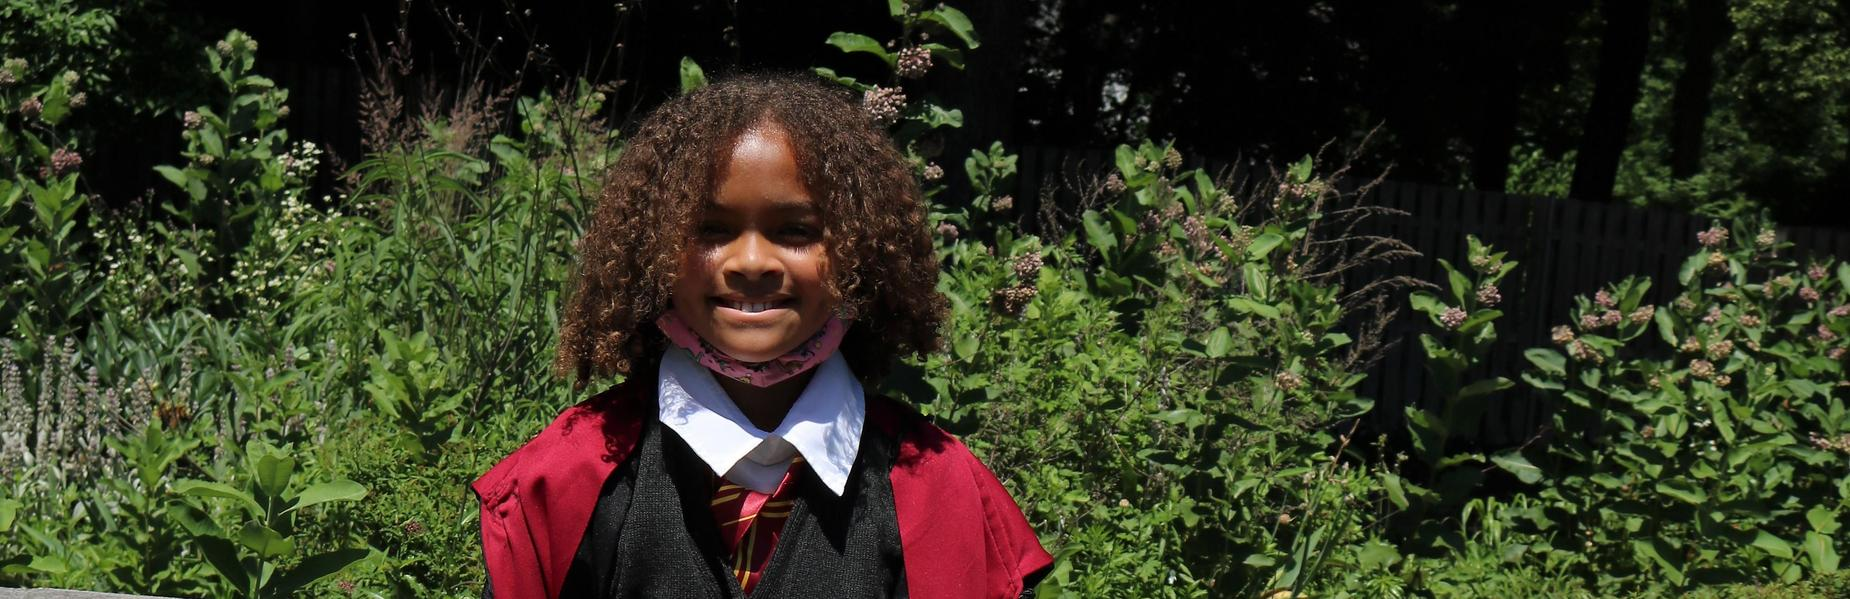 Photo of Franklin 3rd grader dressed as Hermine from Harry Potter during Living Wax Museum.